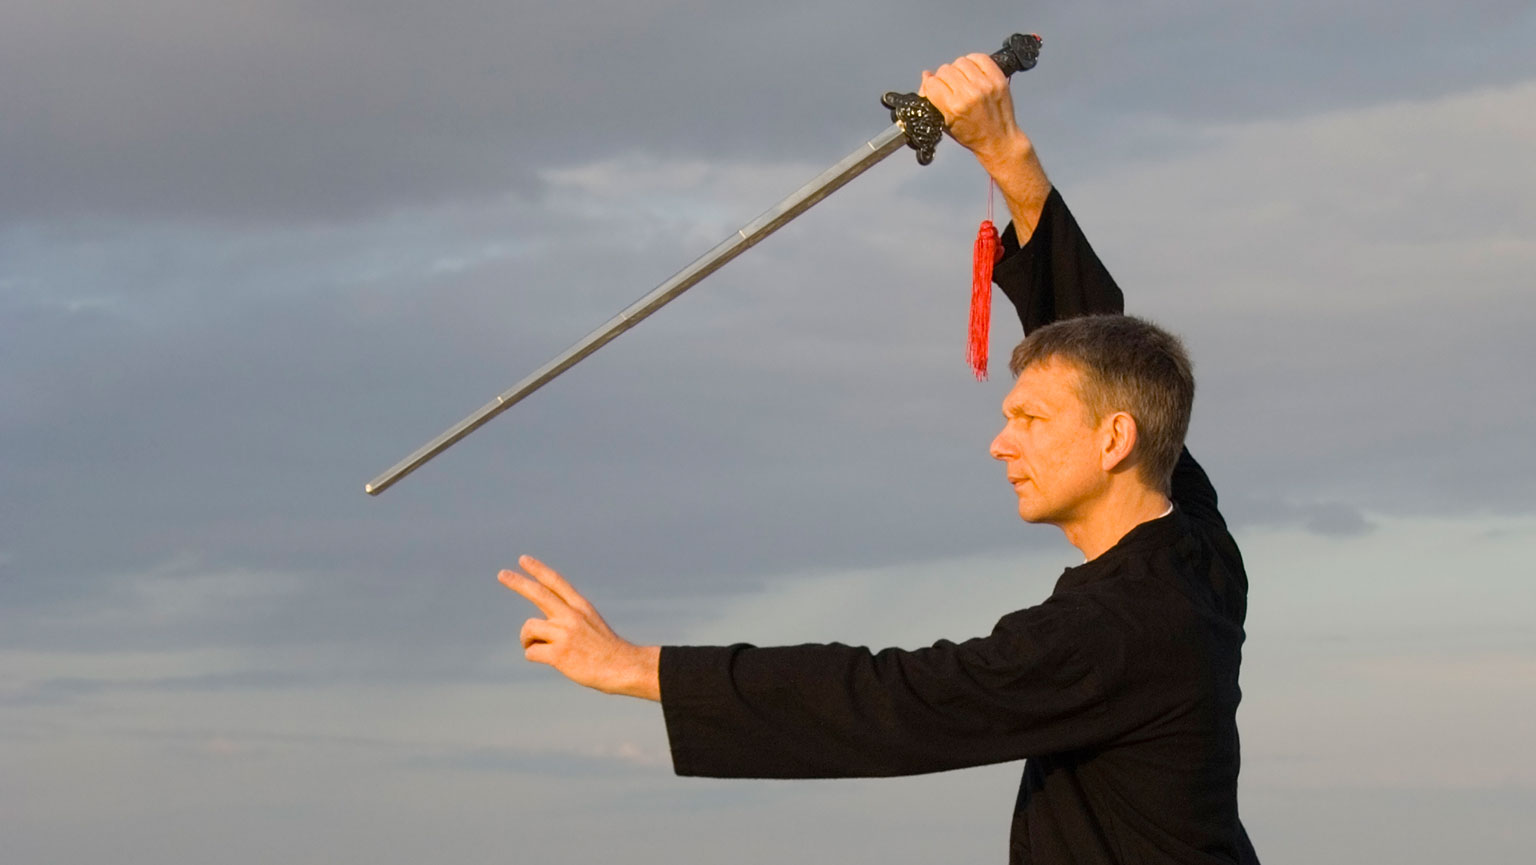 Tai Chi Weapons—When Hands Are Not Empty